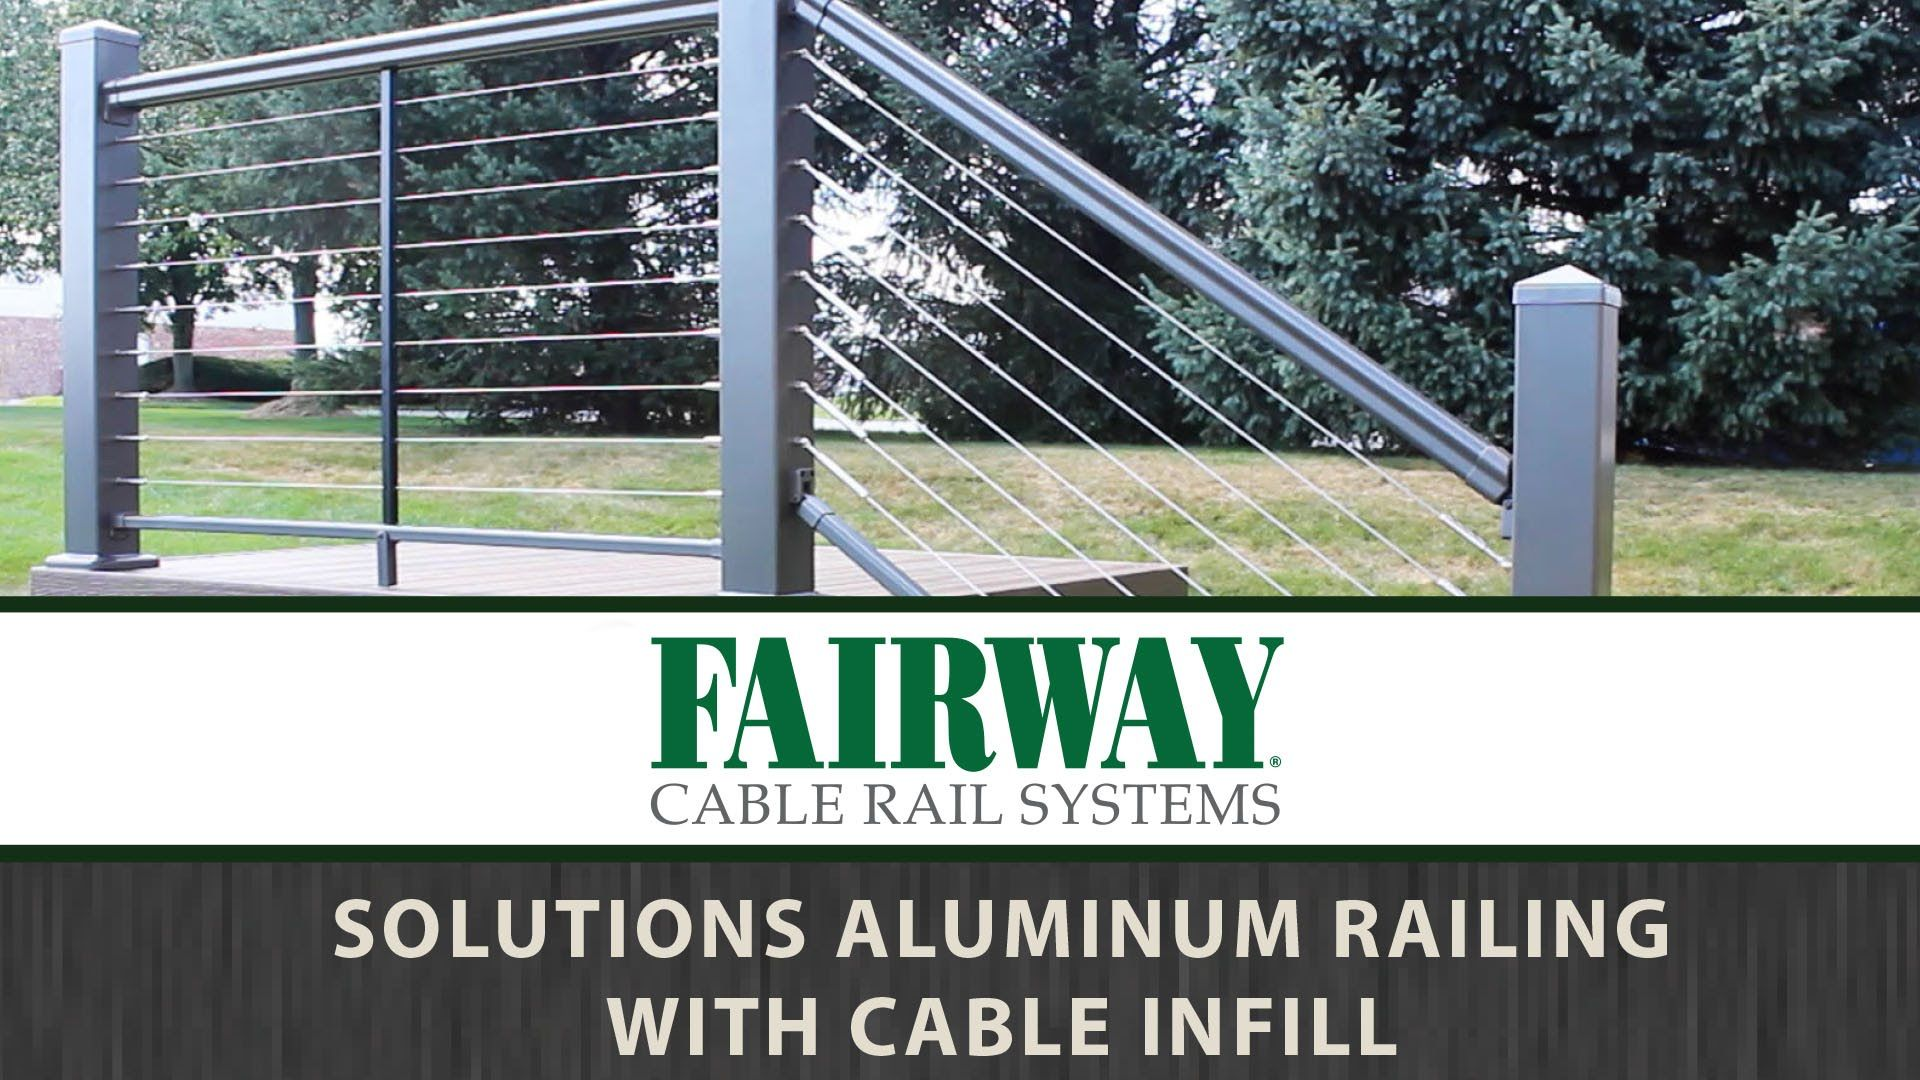 SOLUTIONS Aluminum Railing with cable infill level and stair rail installation. FAIRWAY offers vinyl, composite, and aluminum porch, deck, and balcony guard railing systems for residential and commercial applications. For more information visit www.FairwayBP.com.